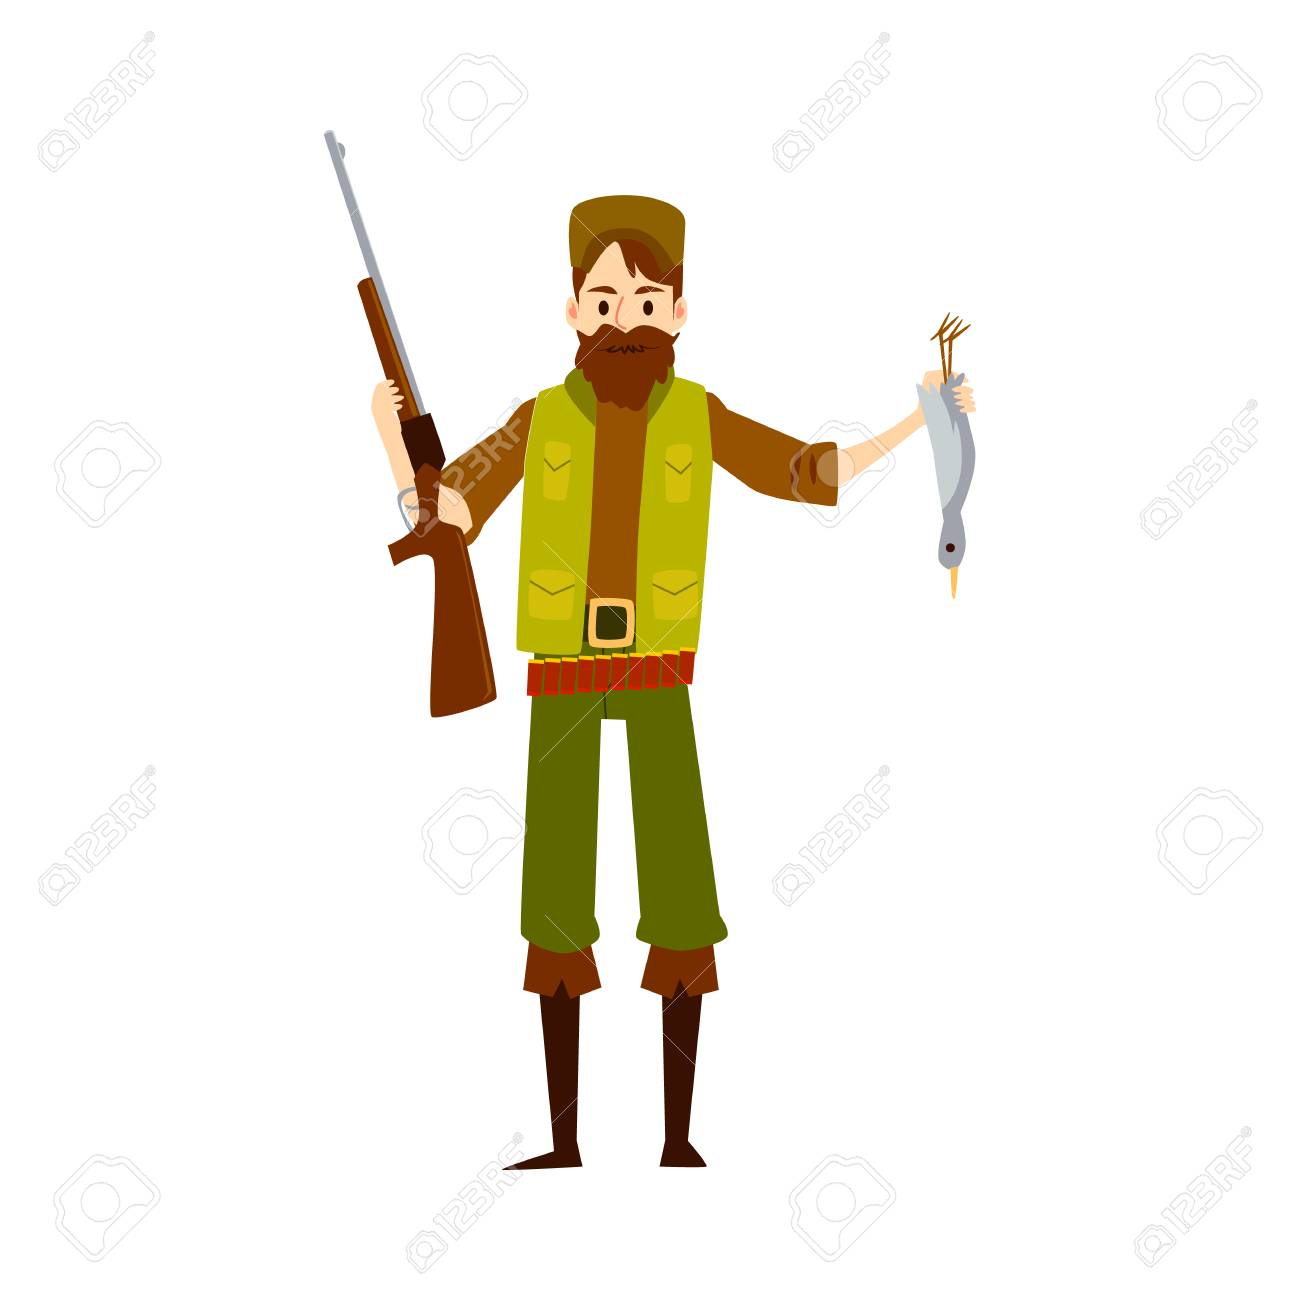 Hunter man with rifle gun and dead duck, happy cartoon character huntsman holding his shotgun weapon and bird, proud of bounty kill, isolated vector illustration on white background. - 122853999